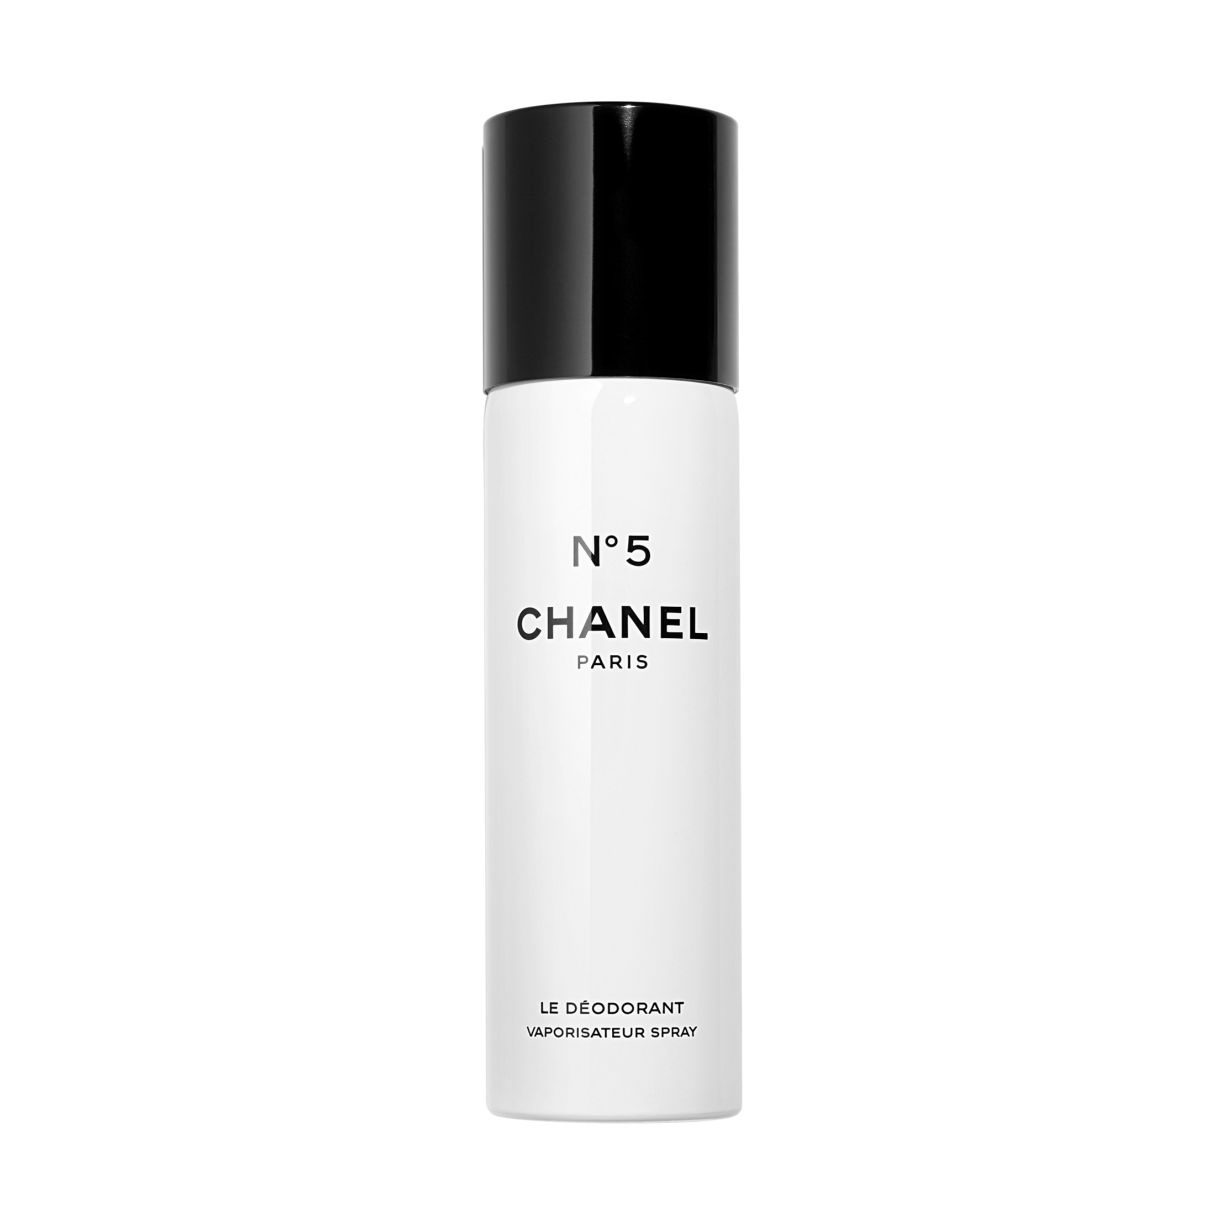 N°5 THE SPRAY DEODORANT